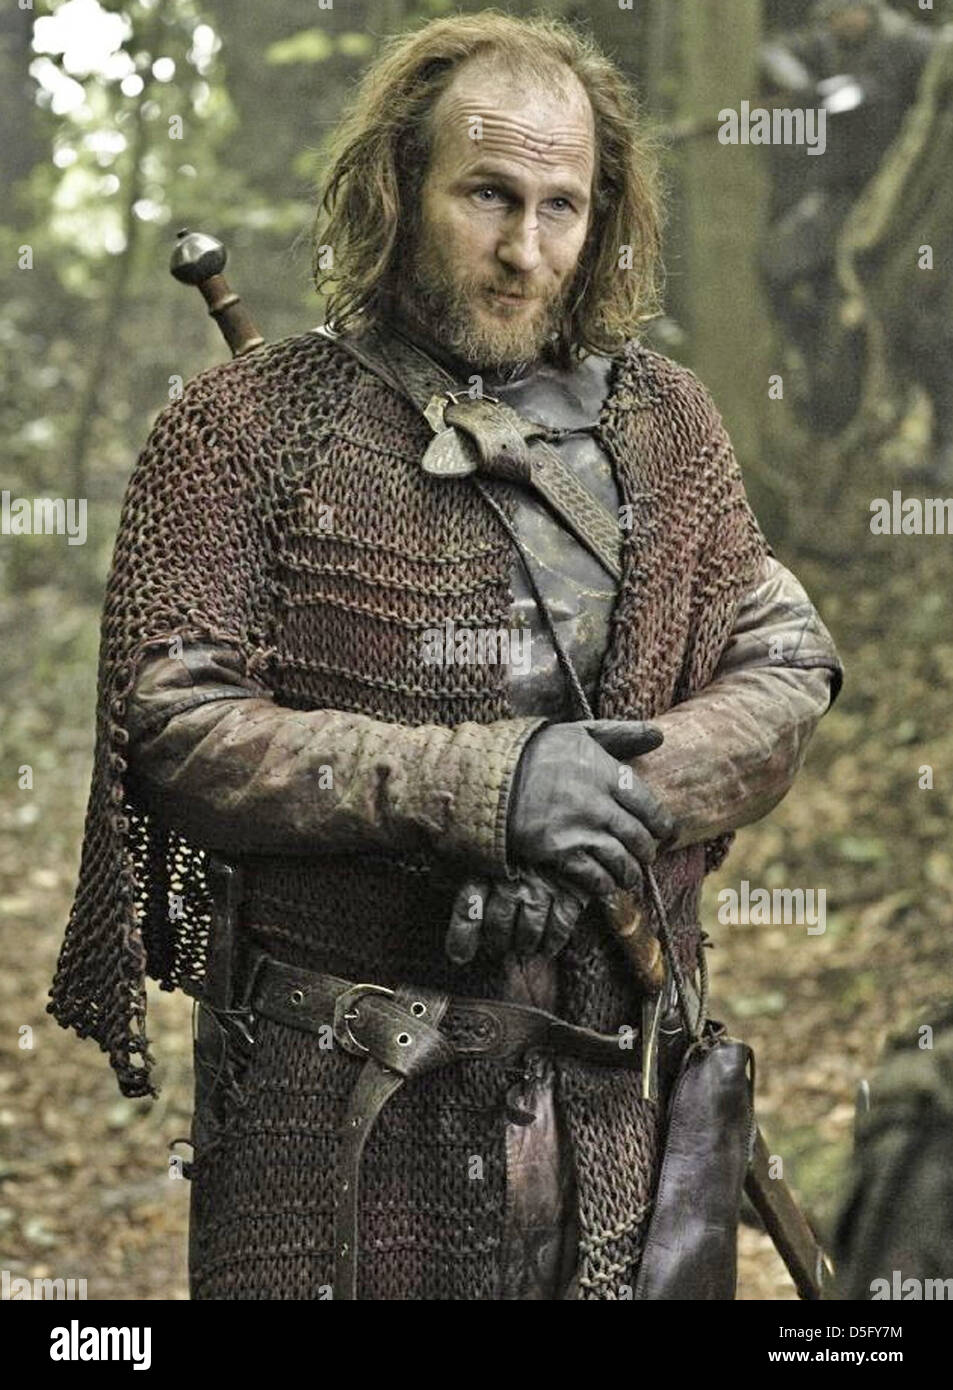 GAME OF THRONES  2011 HBO TV series with Paul Kaye - Stock Image